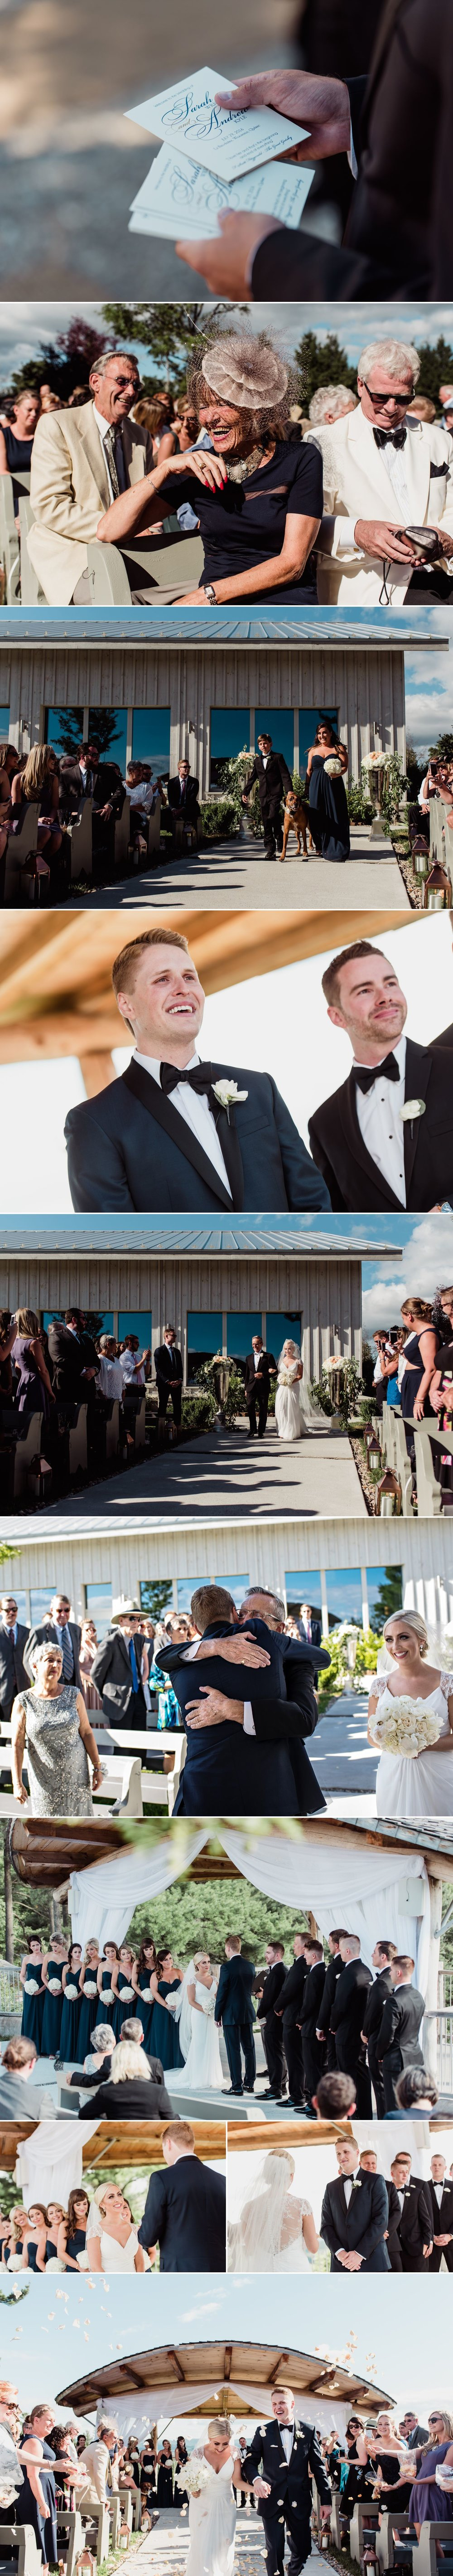 wedding-ceremony-moments-at-le-belvedere-in-wakefield-quebec.jpg